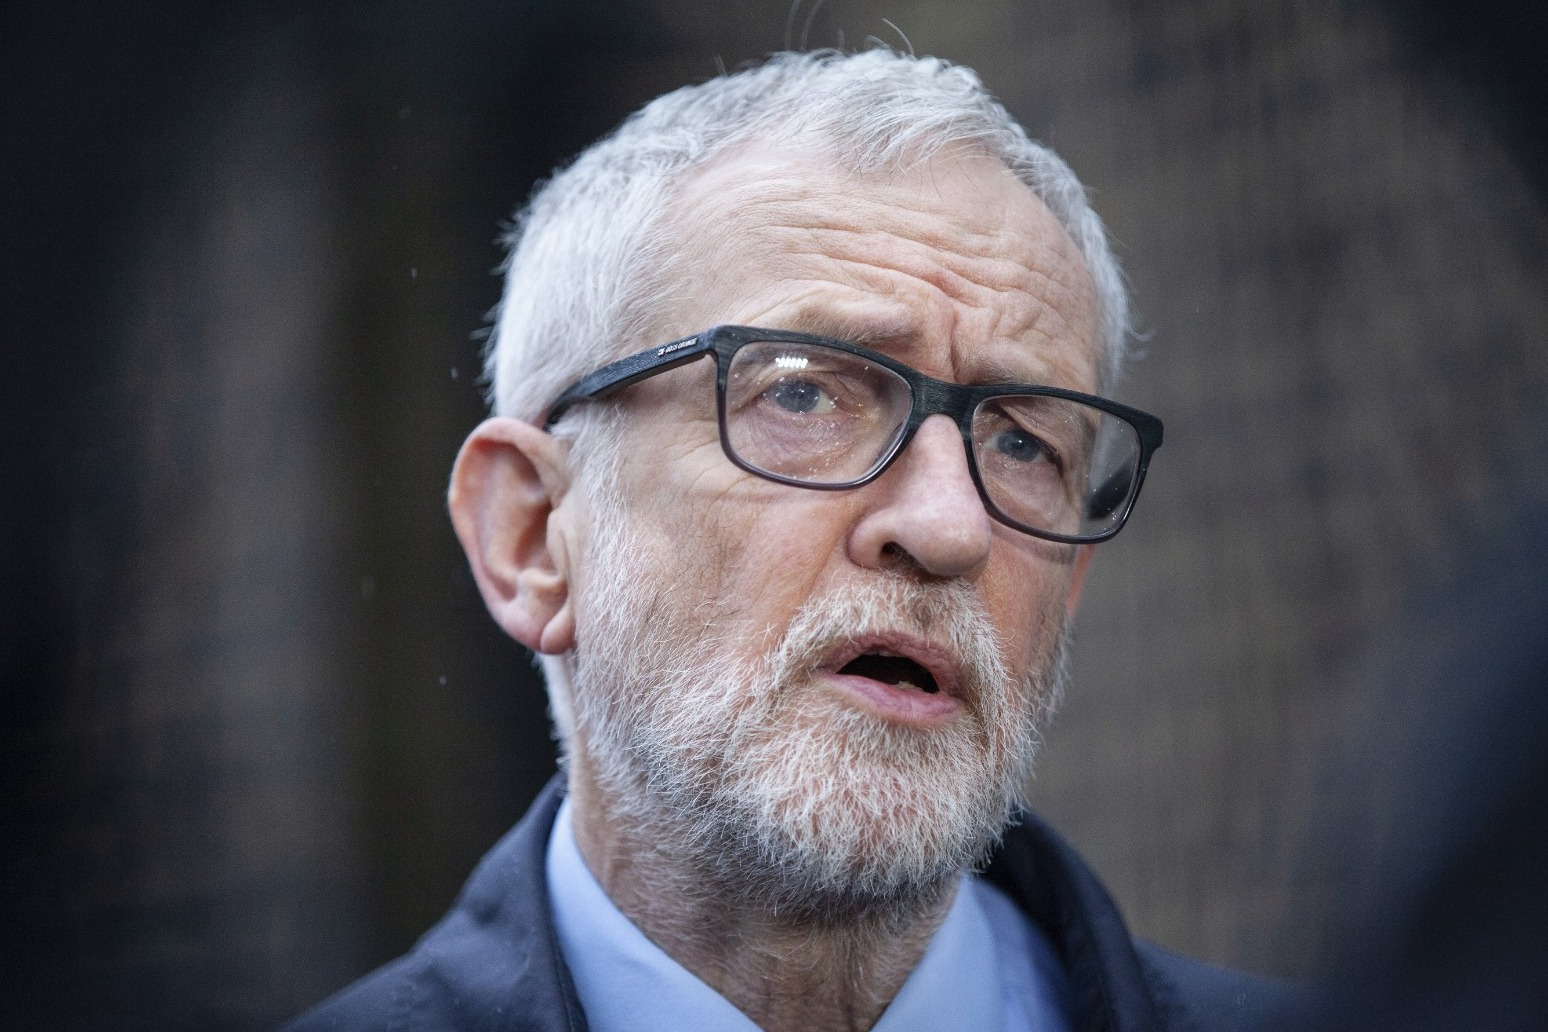 Corbyn announces launch of Peace and Justice Project